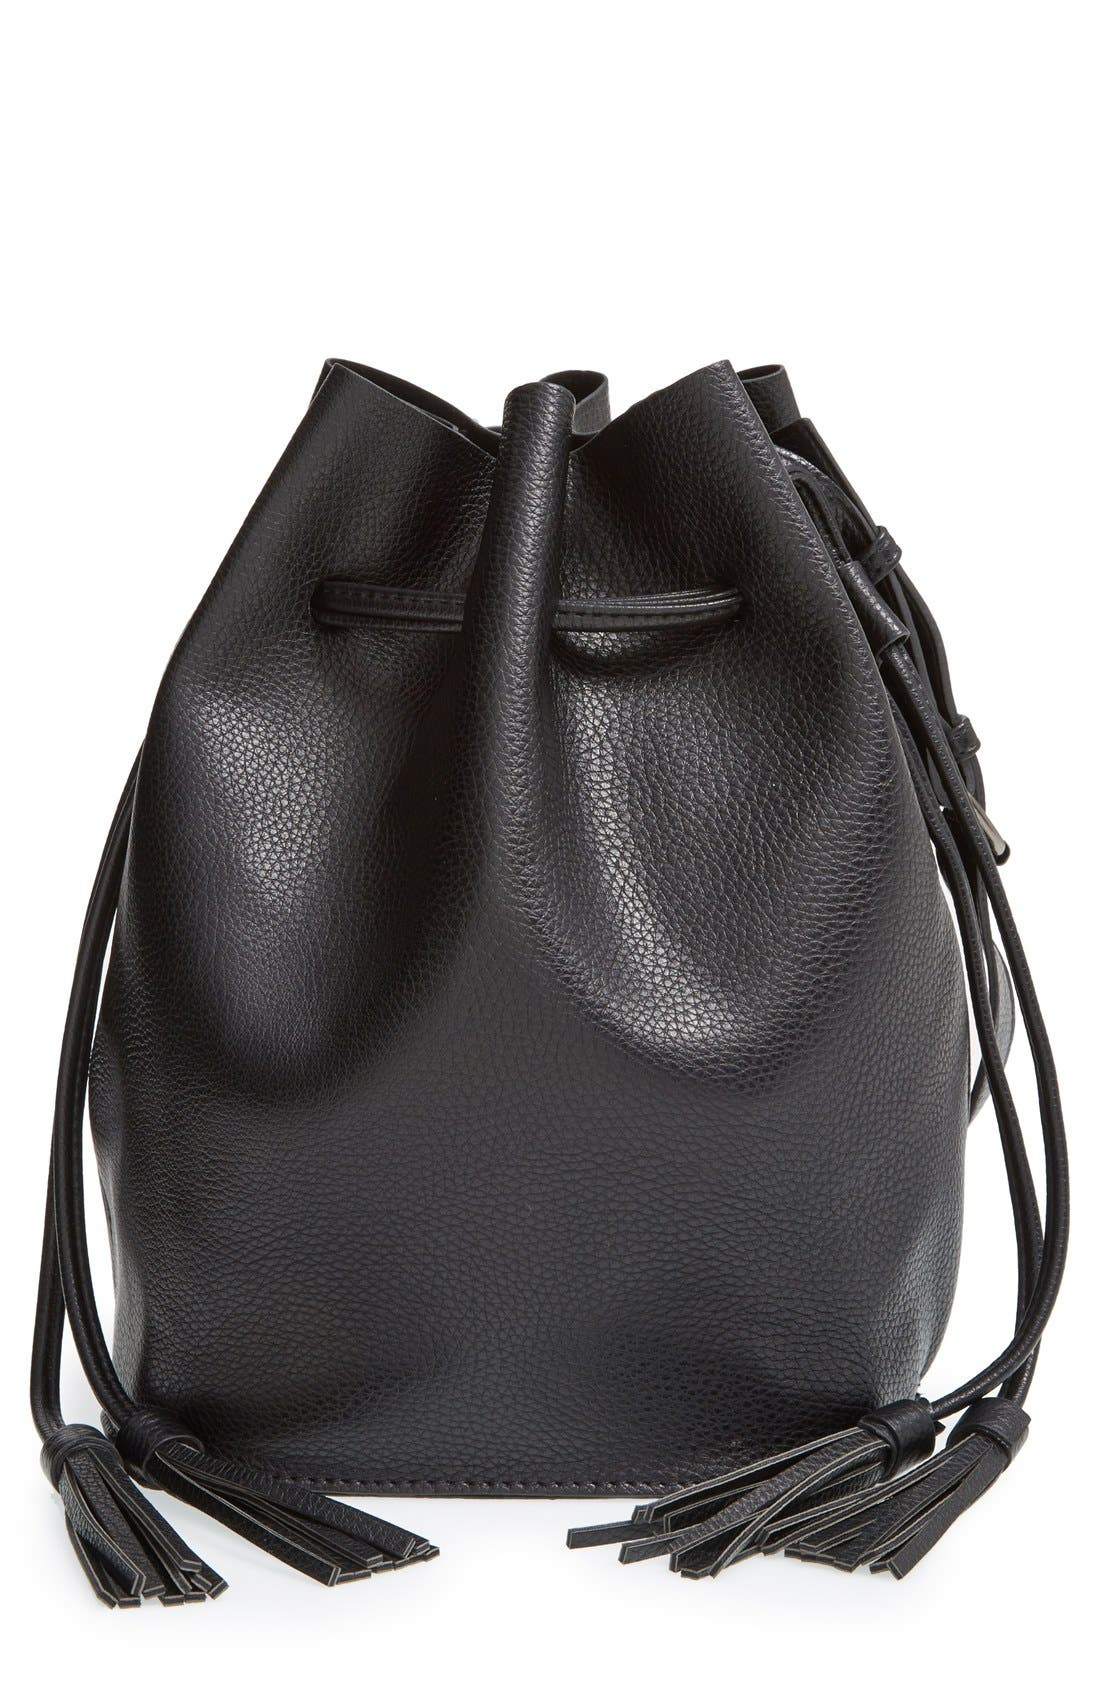 STREET LEVEL,                             Faux Leather Bucket Bag,                             Main thumbnail 1, color,                             001